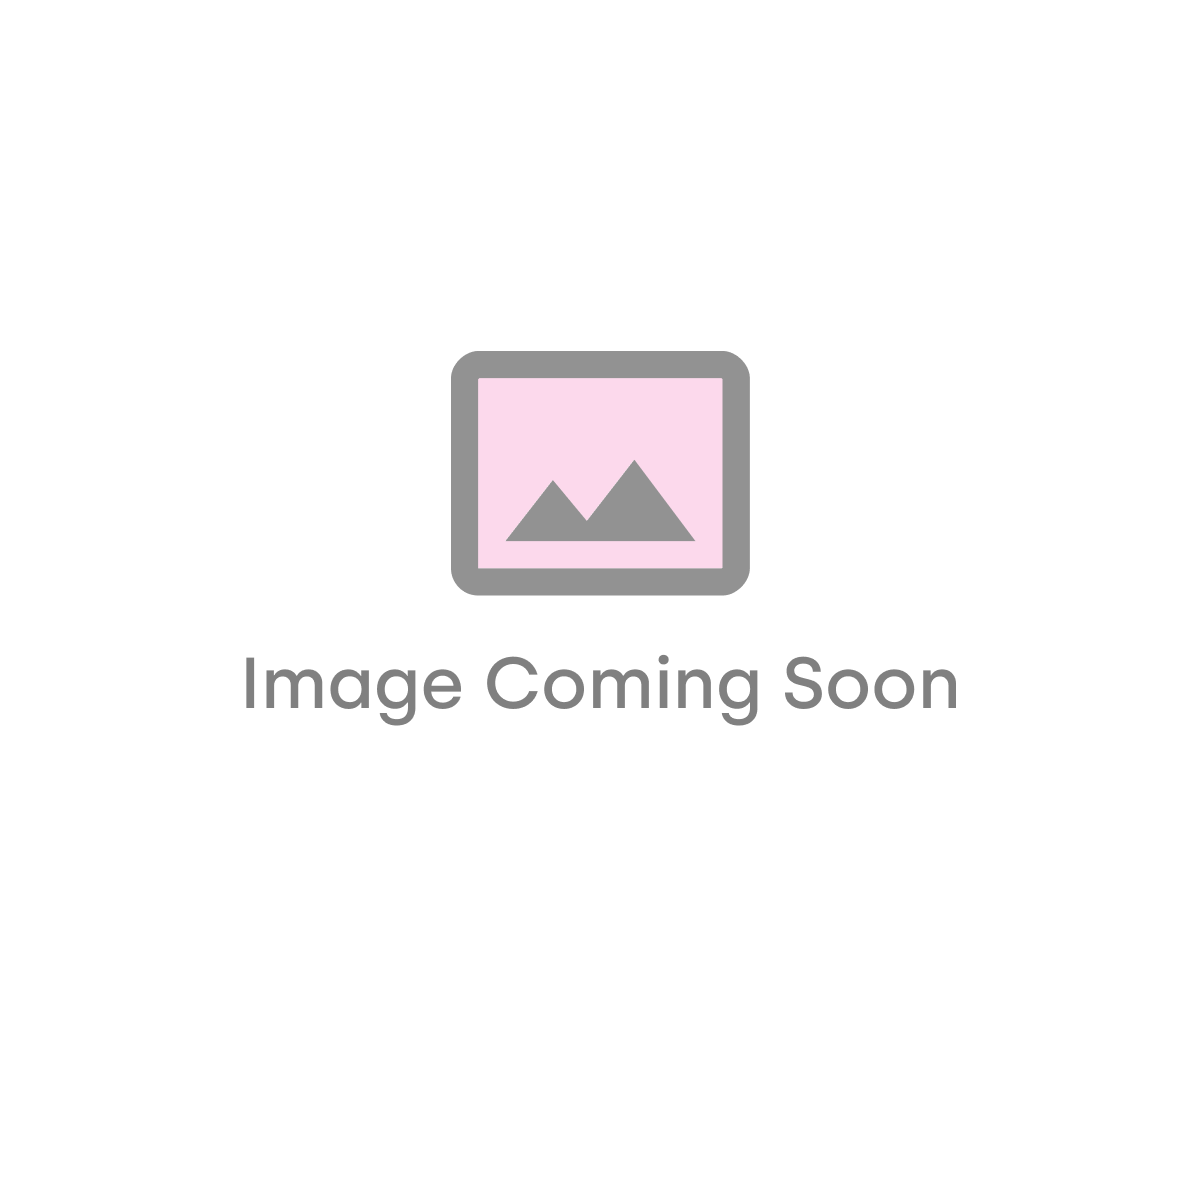 Mia LED Cabinet 600 x 700mm Double Door Demister and Shaver - 13627